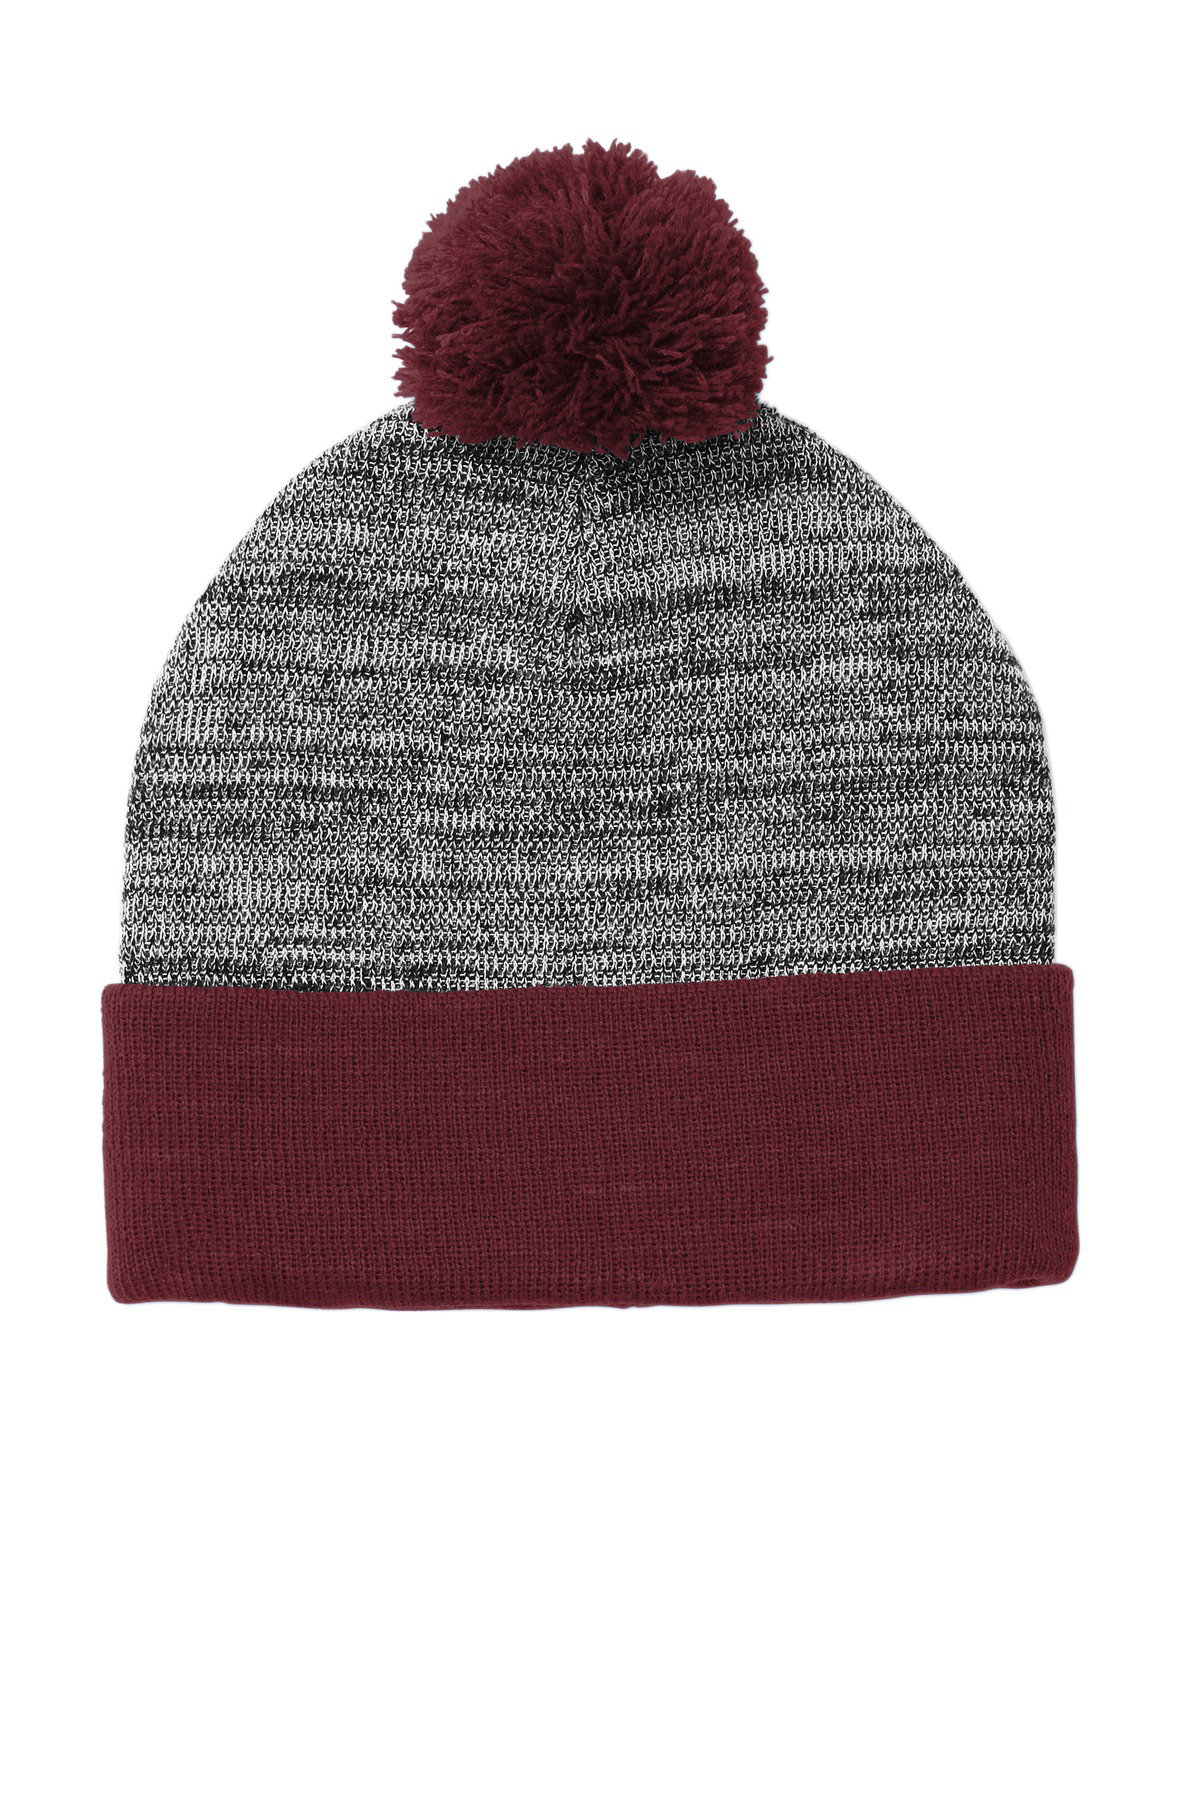 Maroon/ Grey Heather